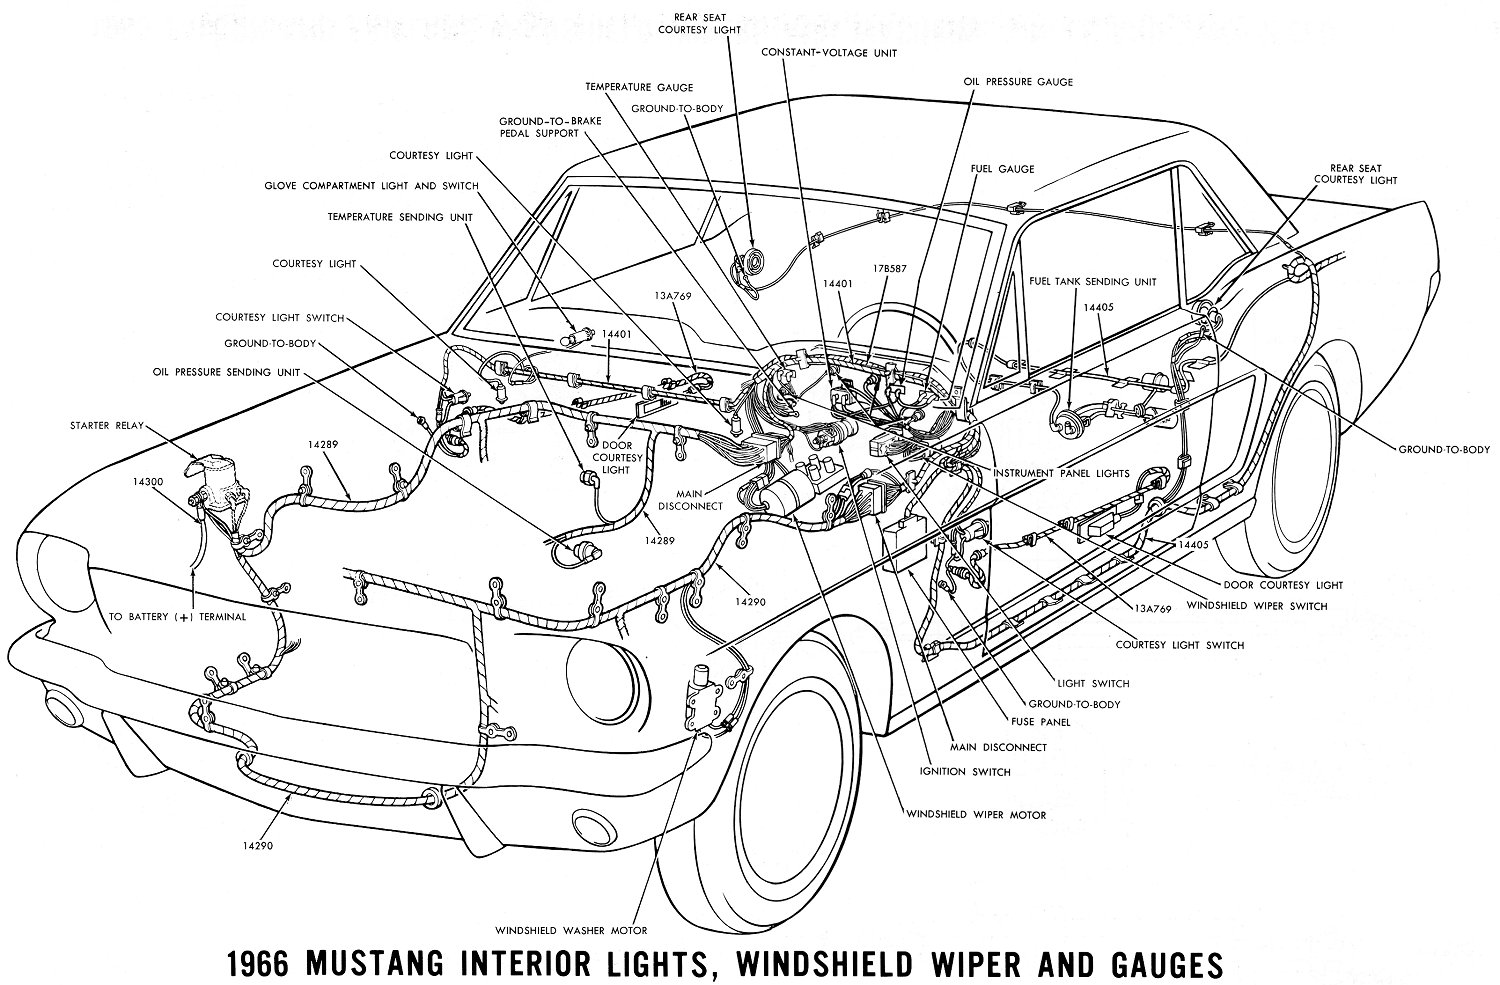 1966 Mustang Wiring Diagrams Average Joe Restoration Wiper Diagram Toyota Interior Lights Windshield And Gauges Schematic